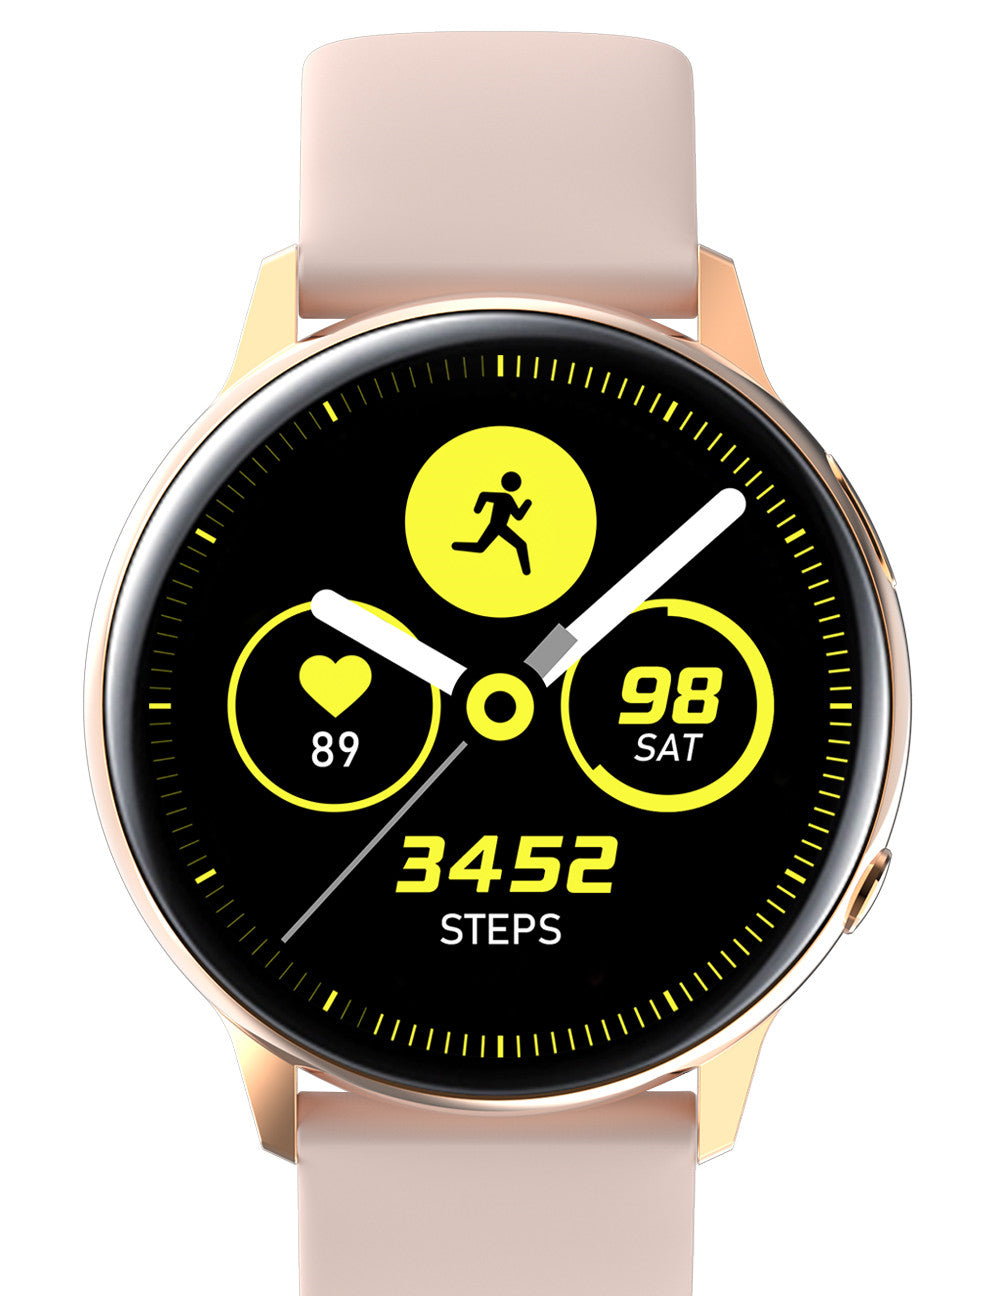 SG2 Smart Watch-detailed information6